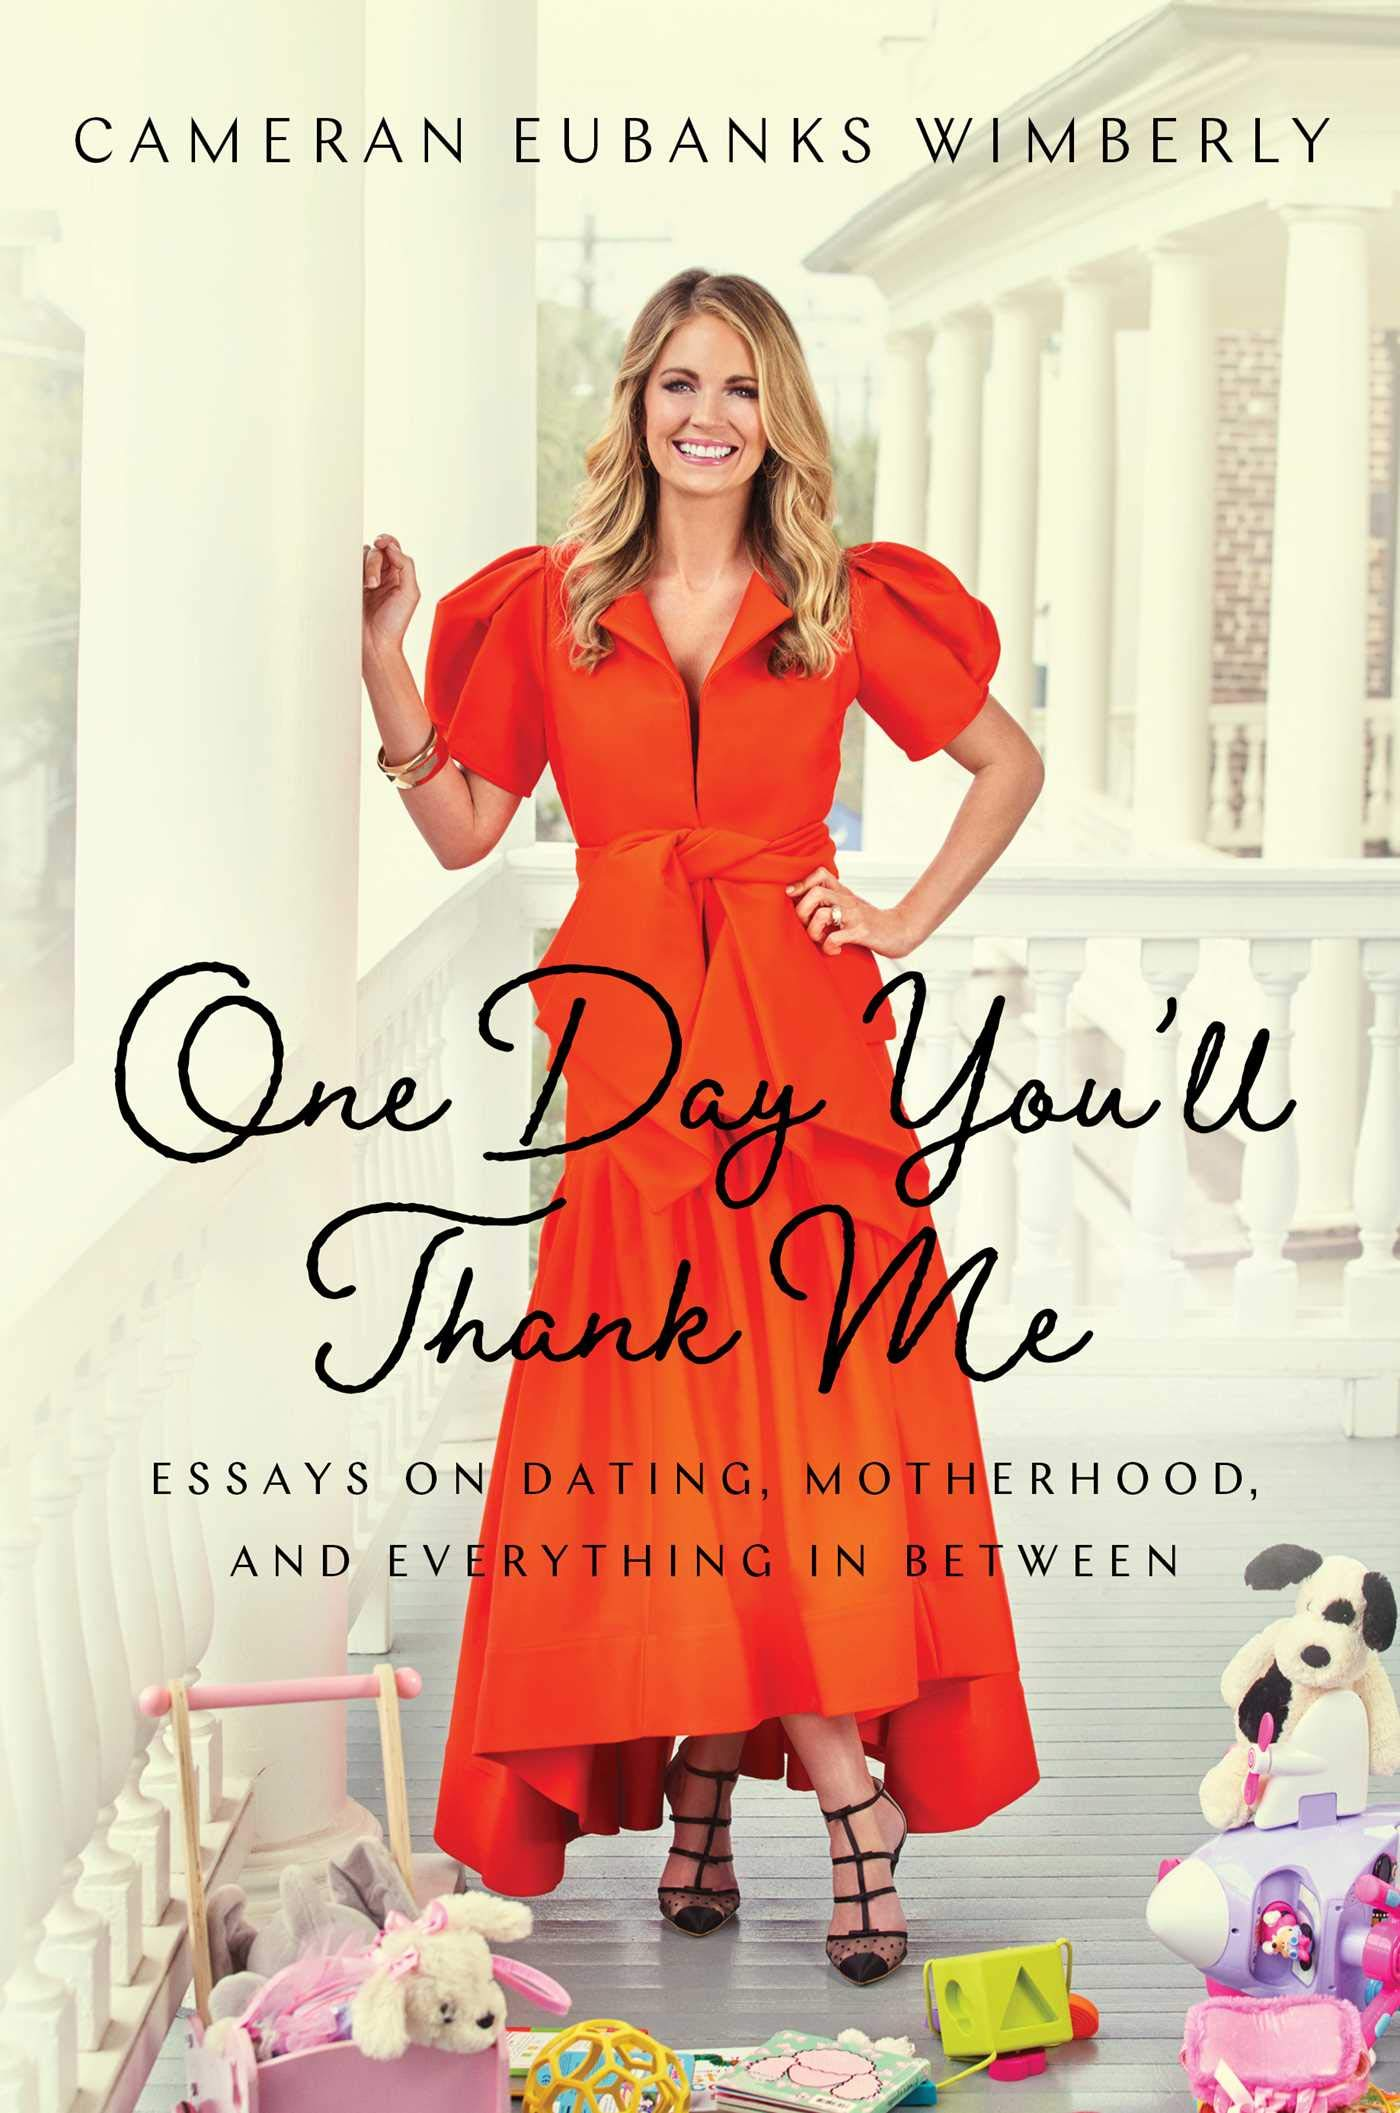 One Day You'll Thank Me: Essays on Dating, Motherhood, and Everything In Between WeeklyReviewer